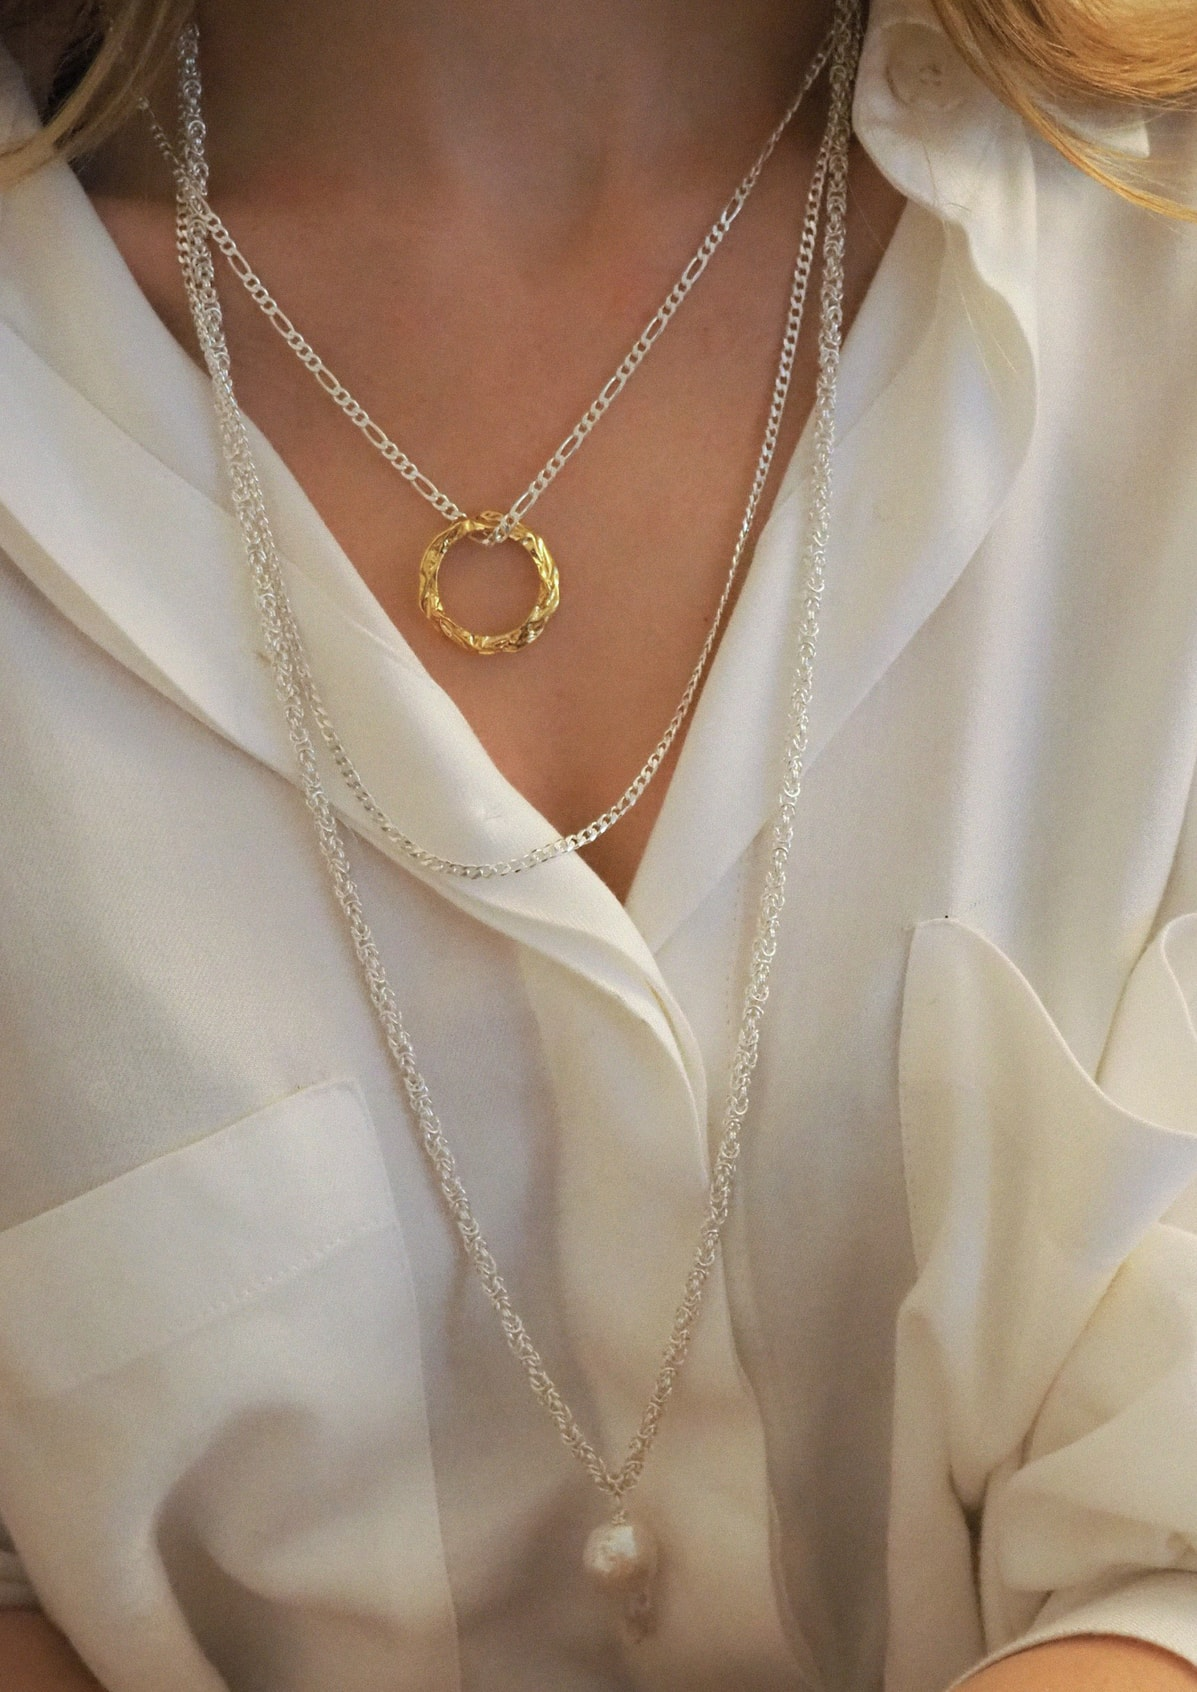 FULL MOON GRECIAN CHAIN NECKLACE